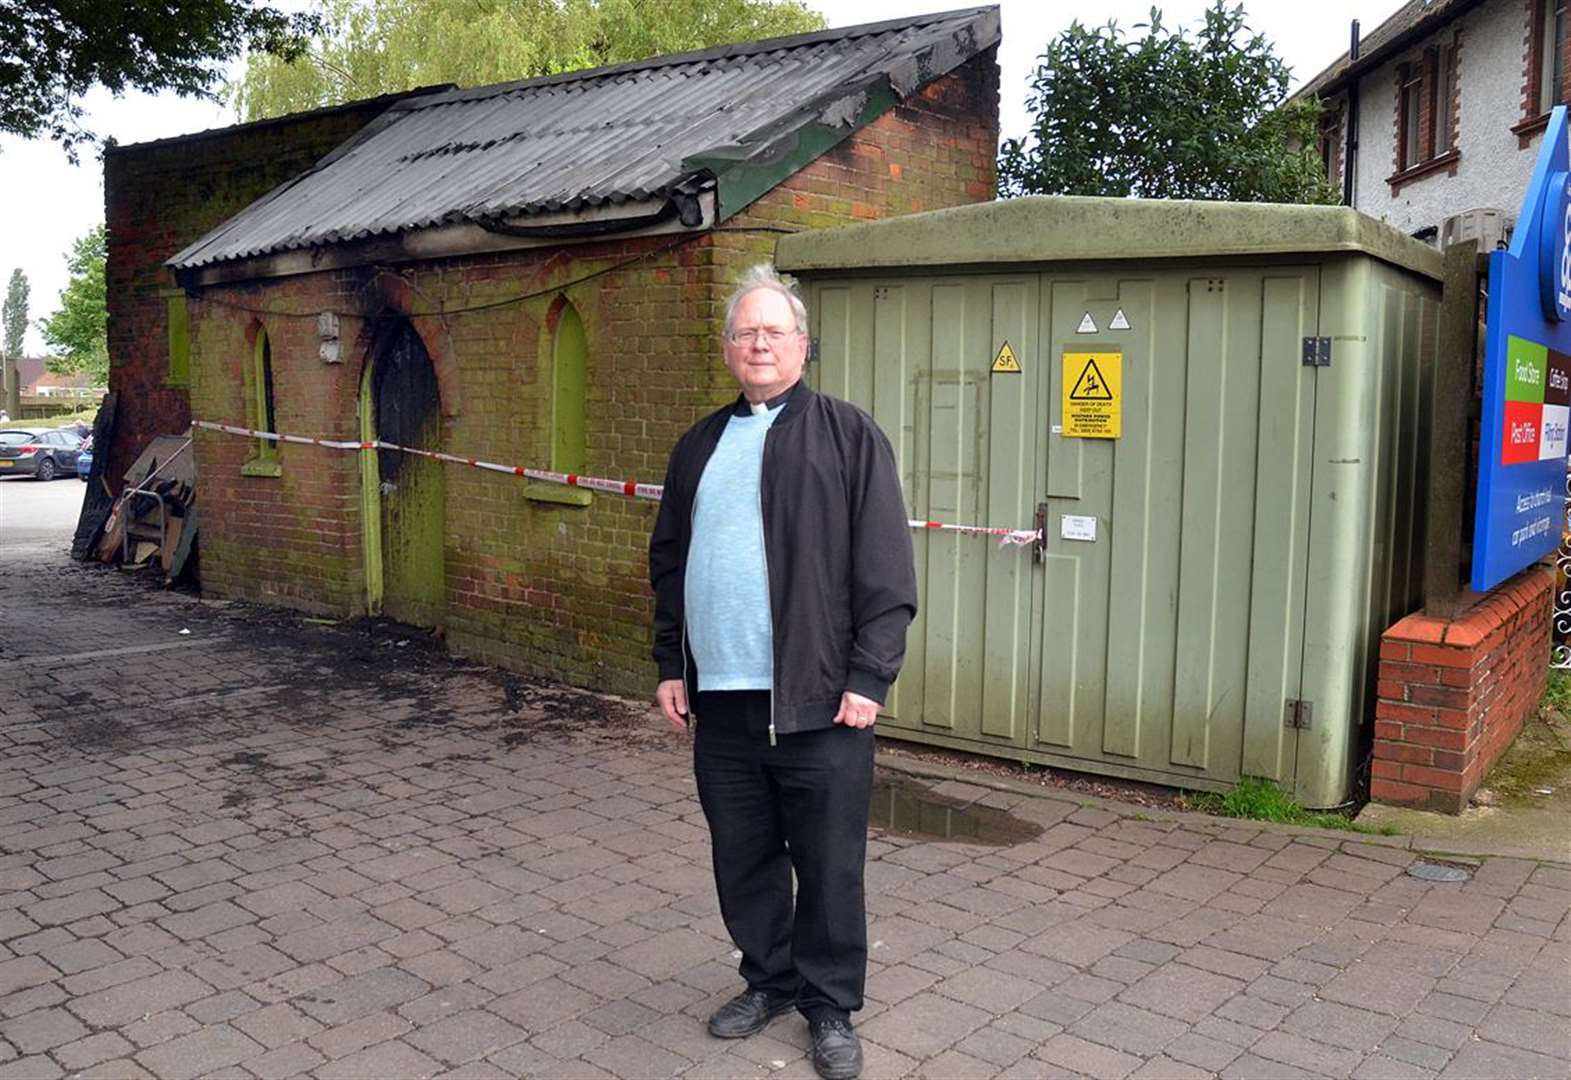 Community rallies round after arson attack at Long Sutton church store